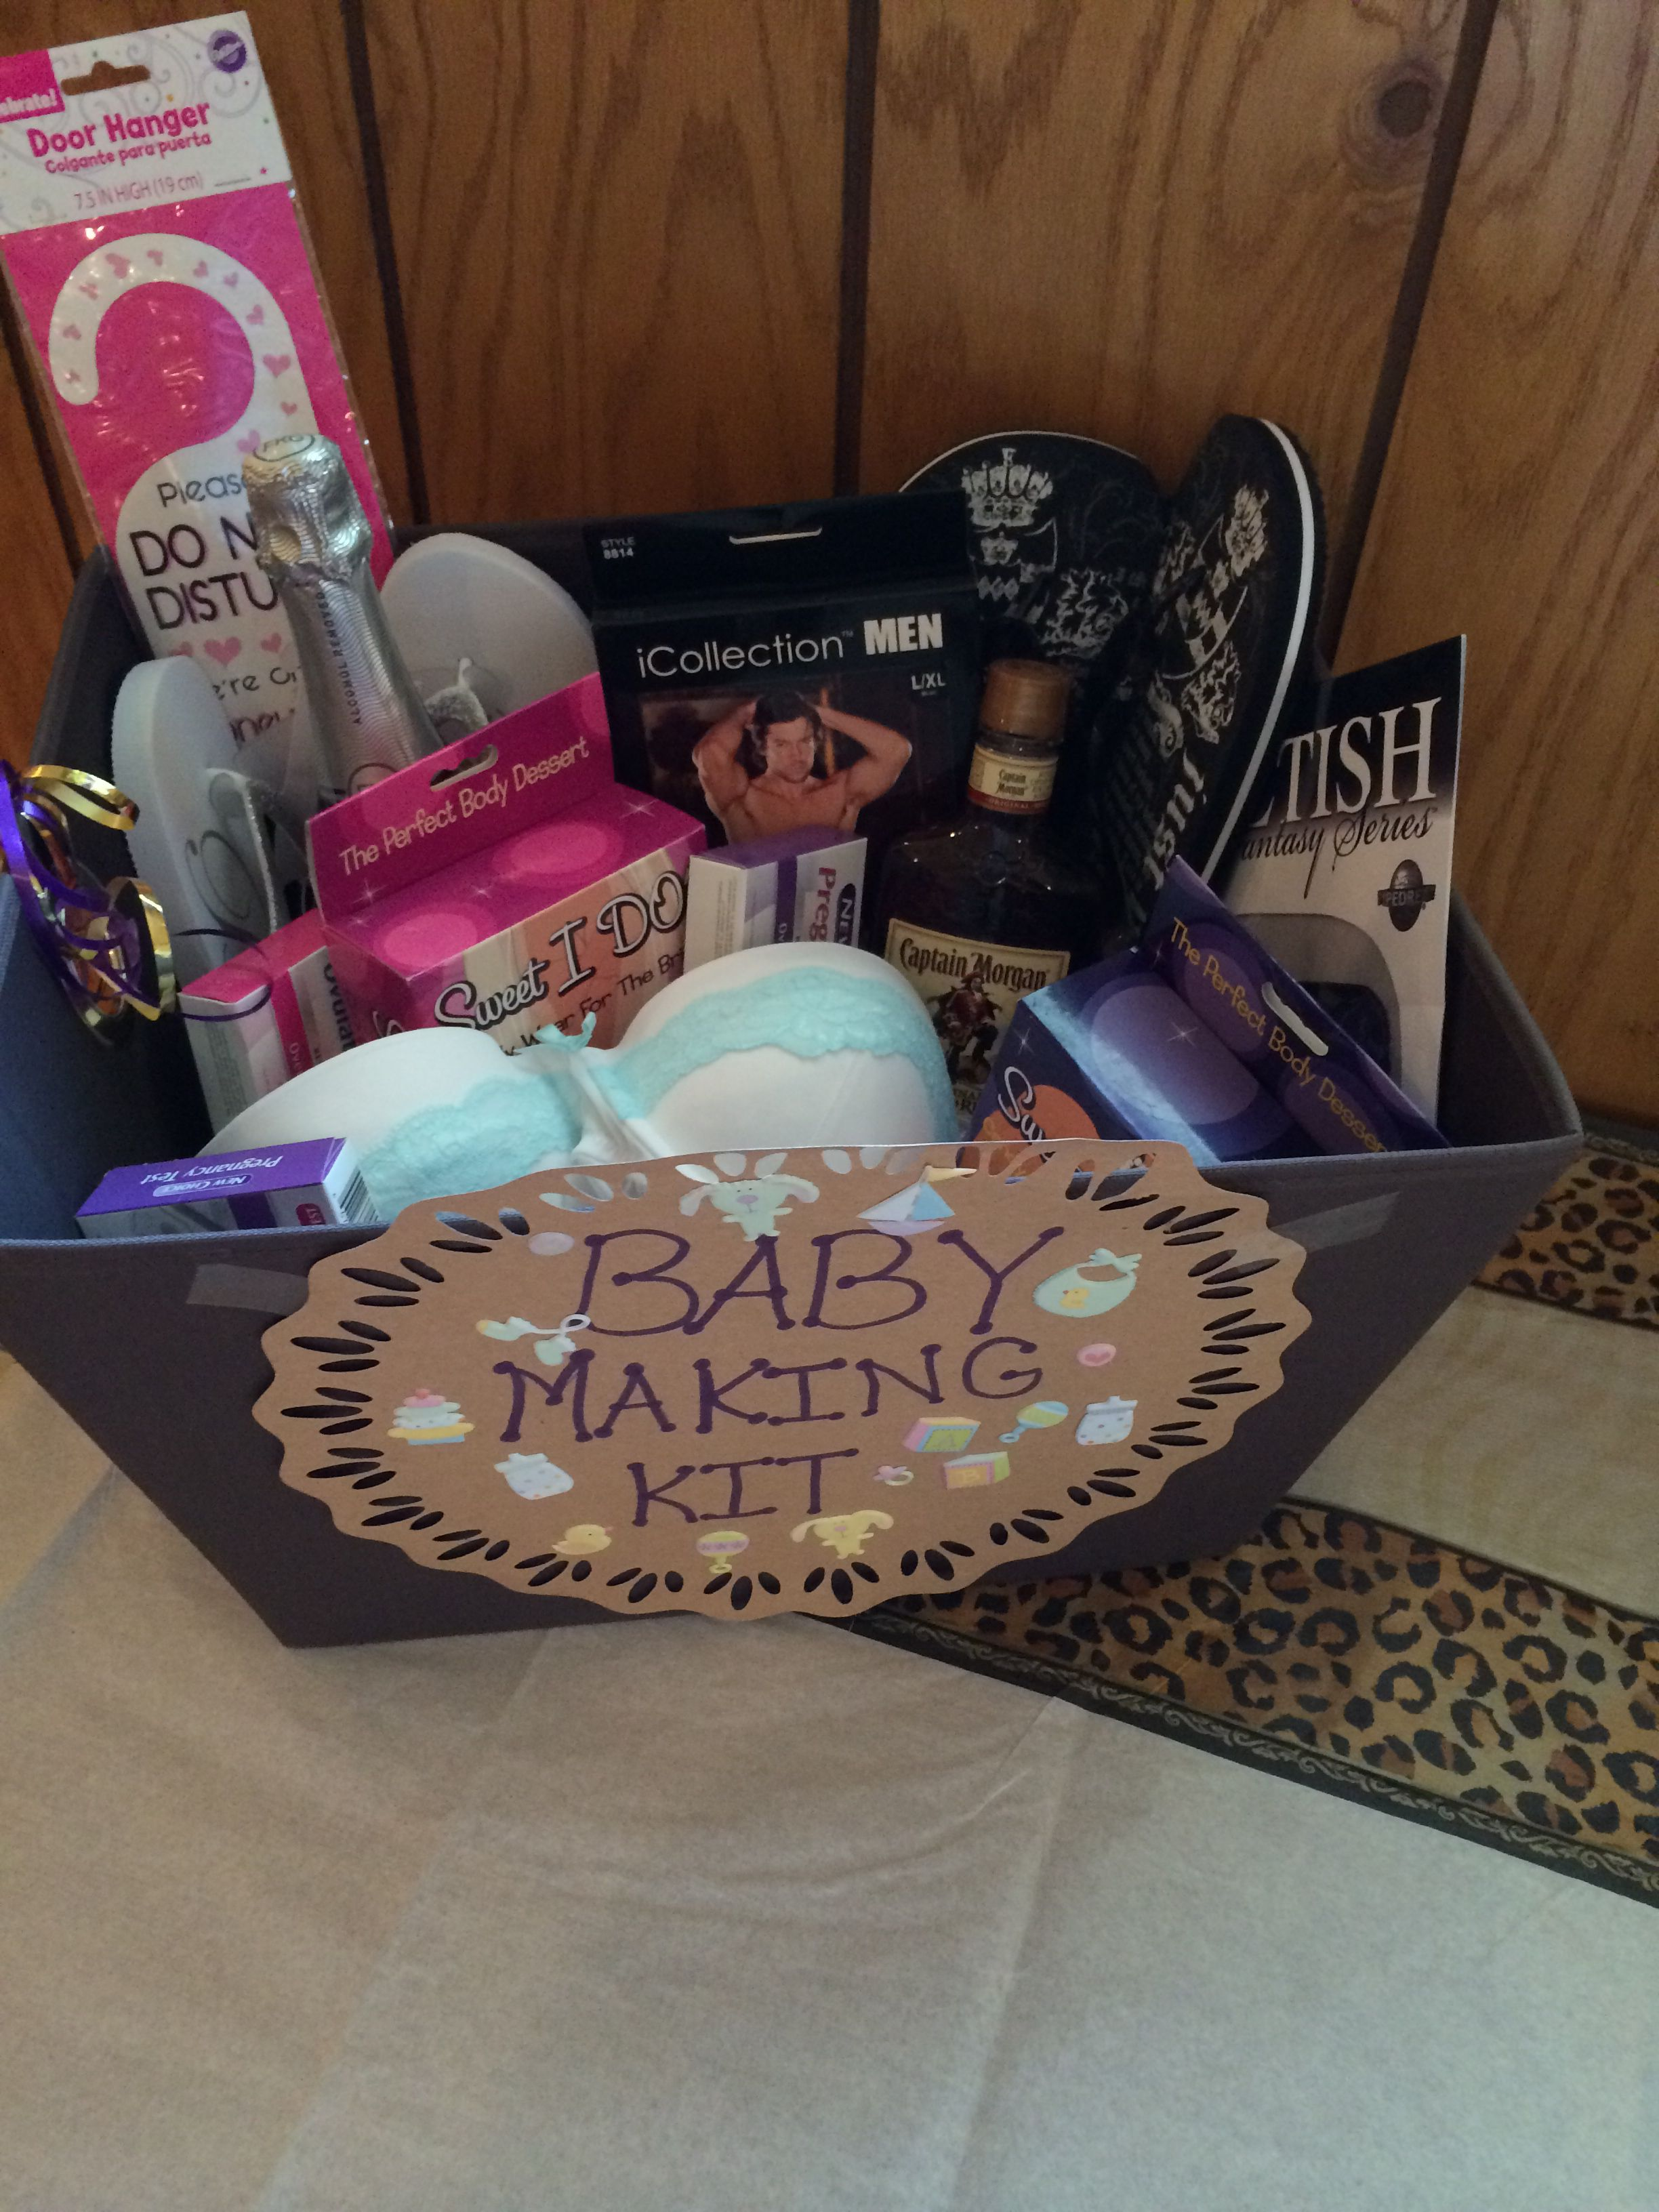 baby makin kit for bridal shower gift to get u started i included a bottle of whiskey a blind fold and edible panties if ur feelin friskey i added some